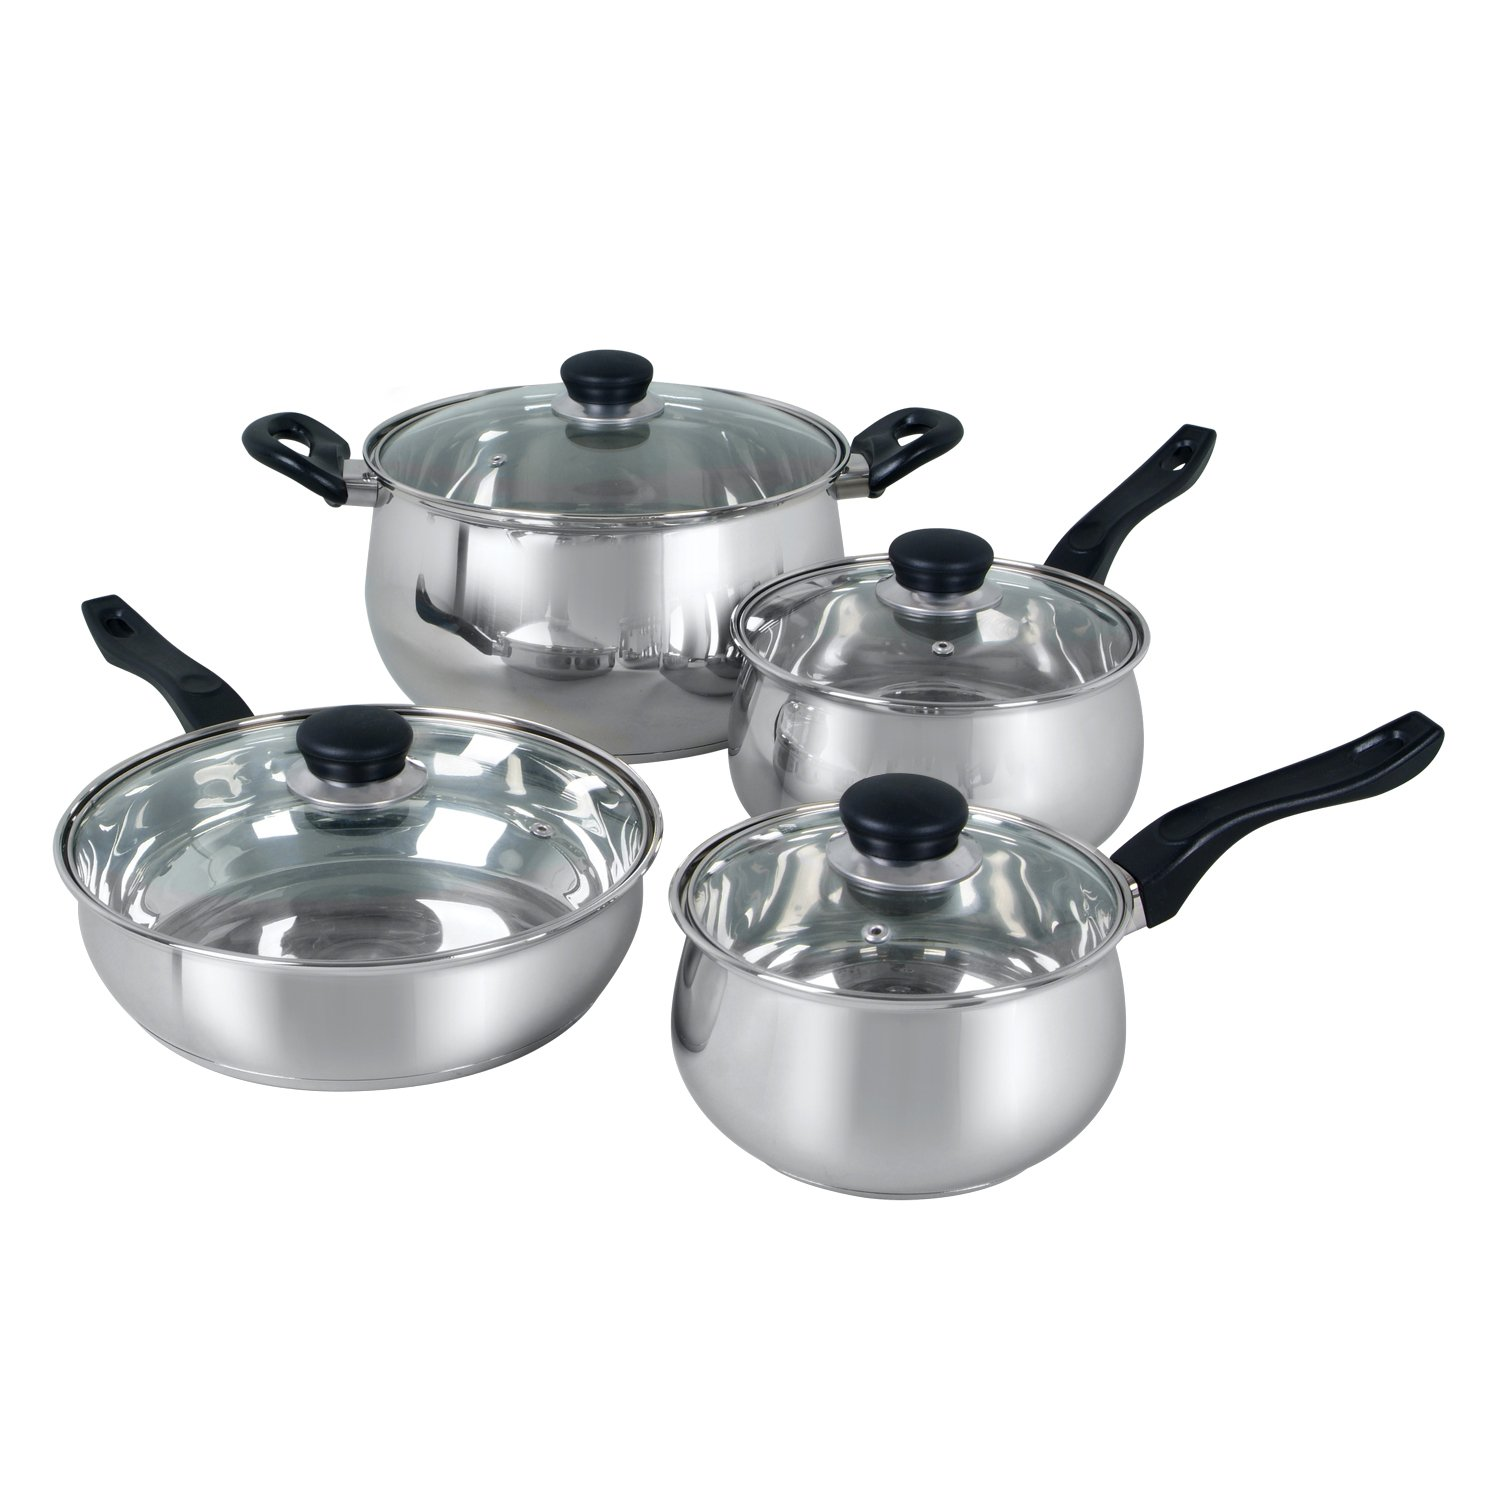 Oster 78719.08 Rametto Stainless Steel 8 Piece Cookware Set, Silver Gibson